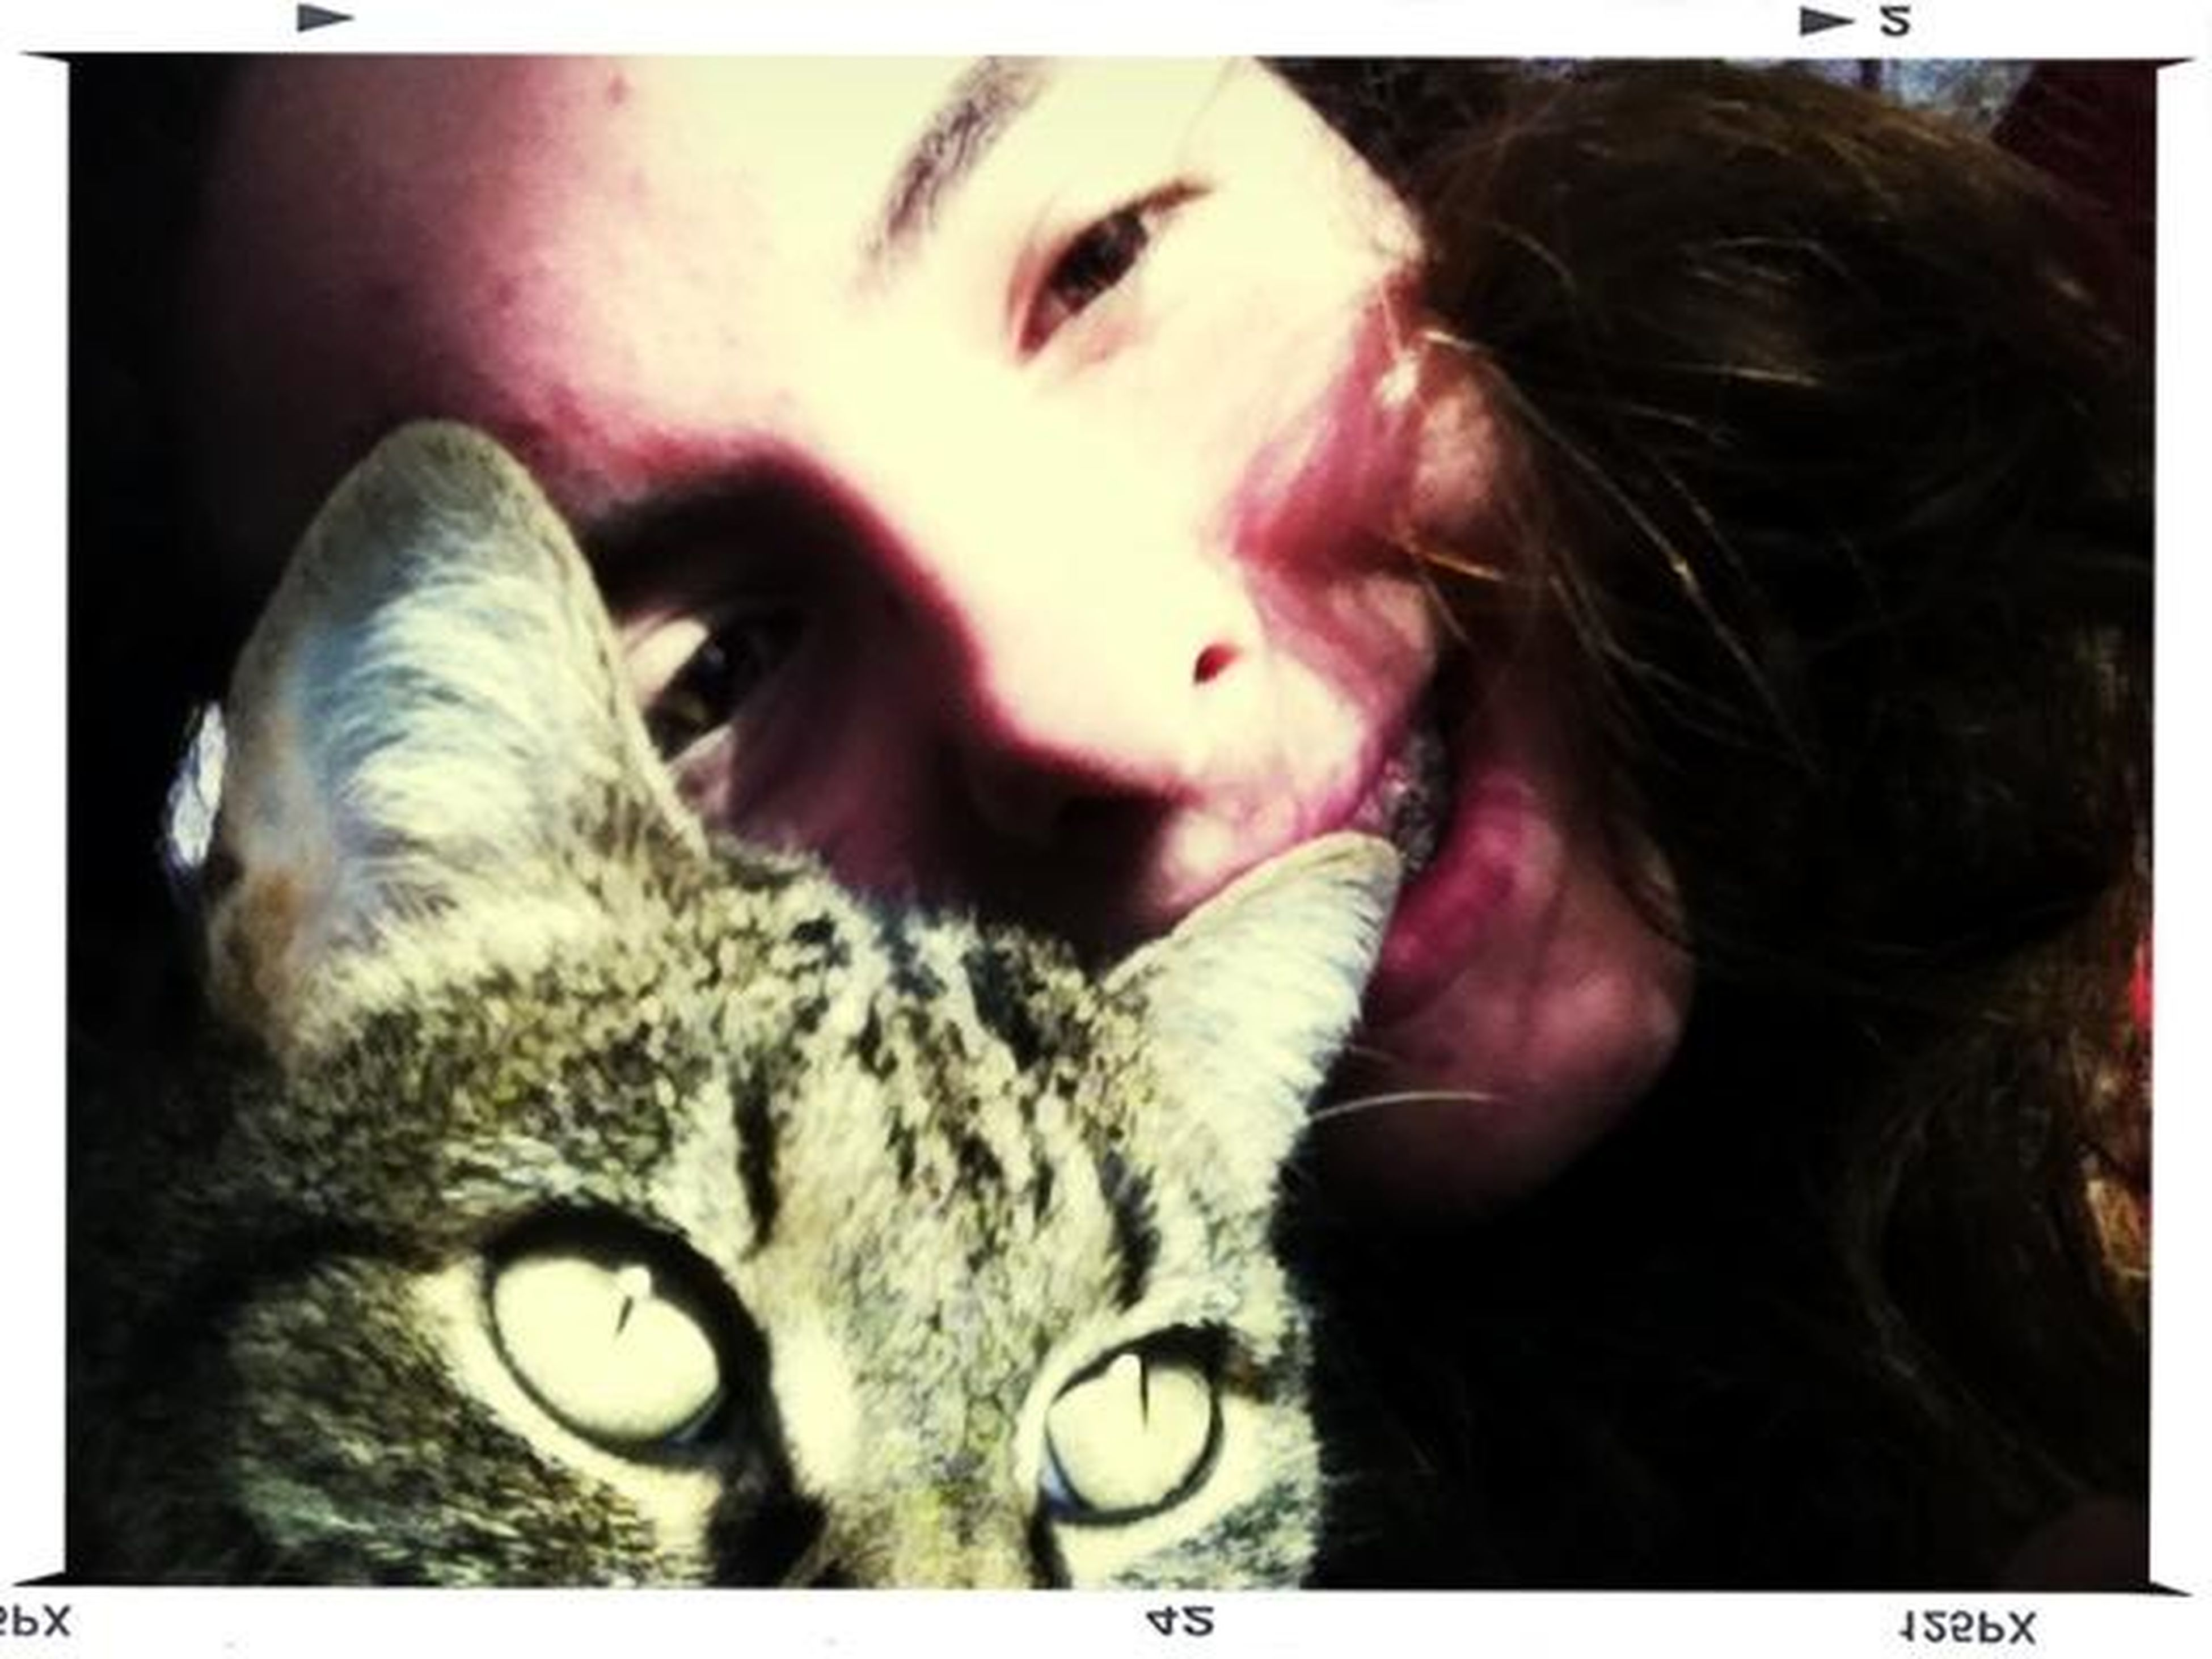 transfer print, auto post production filter, indoors, looking at camera, portrait, headshot, person, close-up, domestic cat, pets, lifestyles, cat, leisure activity, domestic animals, front view, one animal, head and shoulders, young women